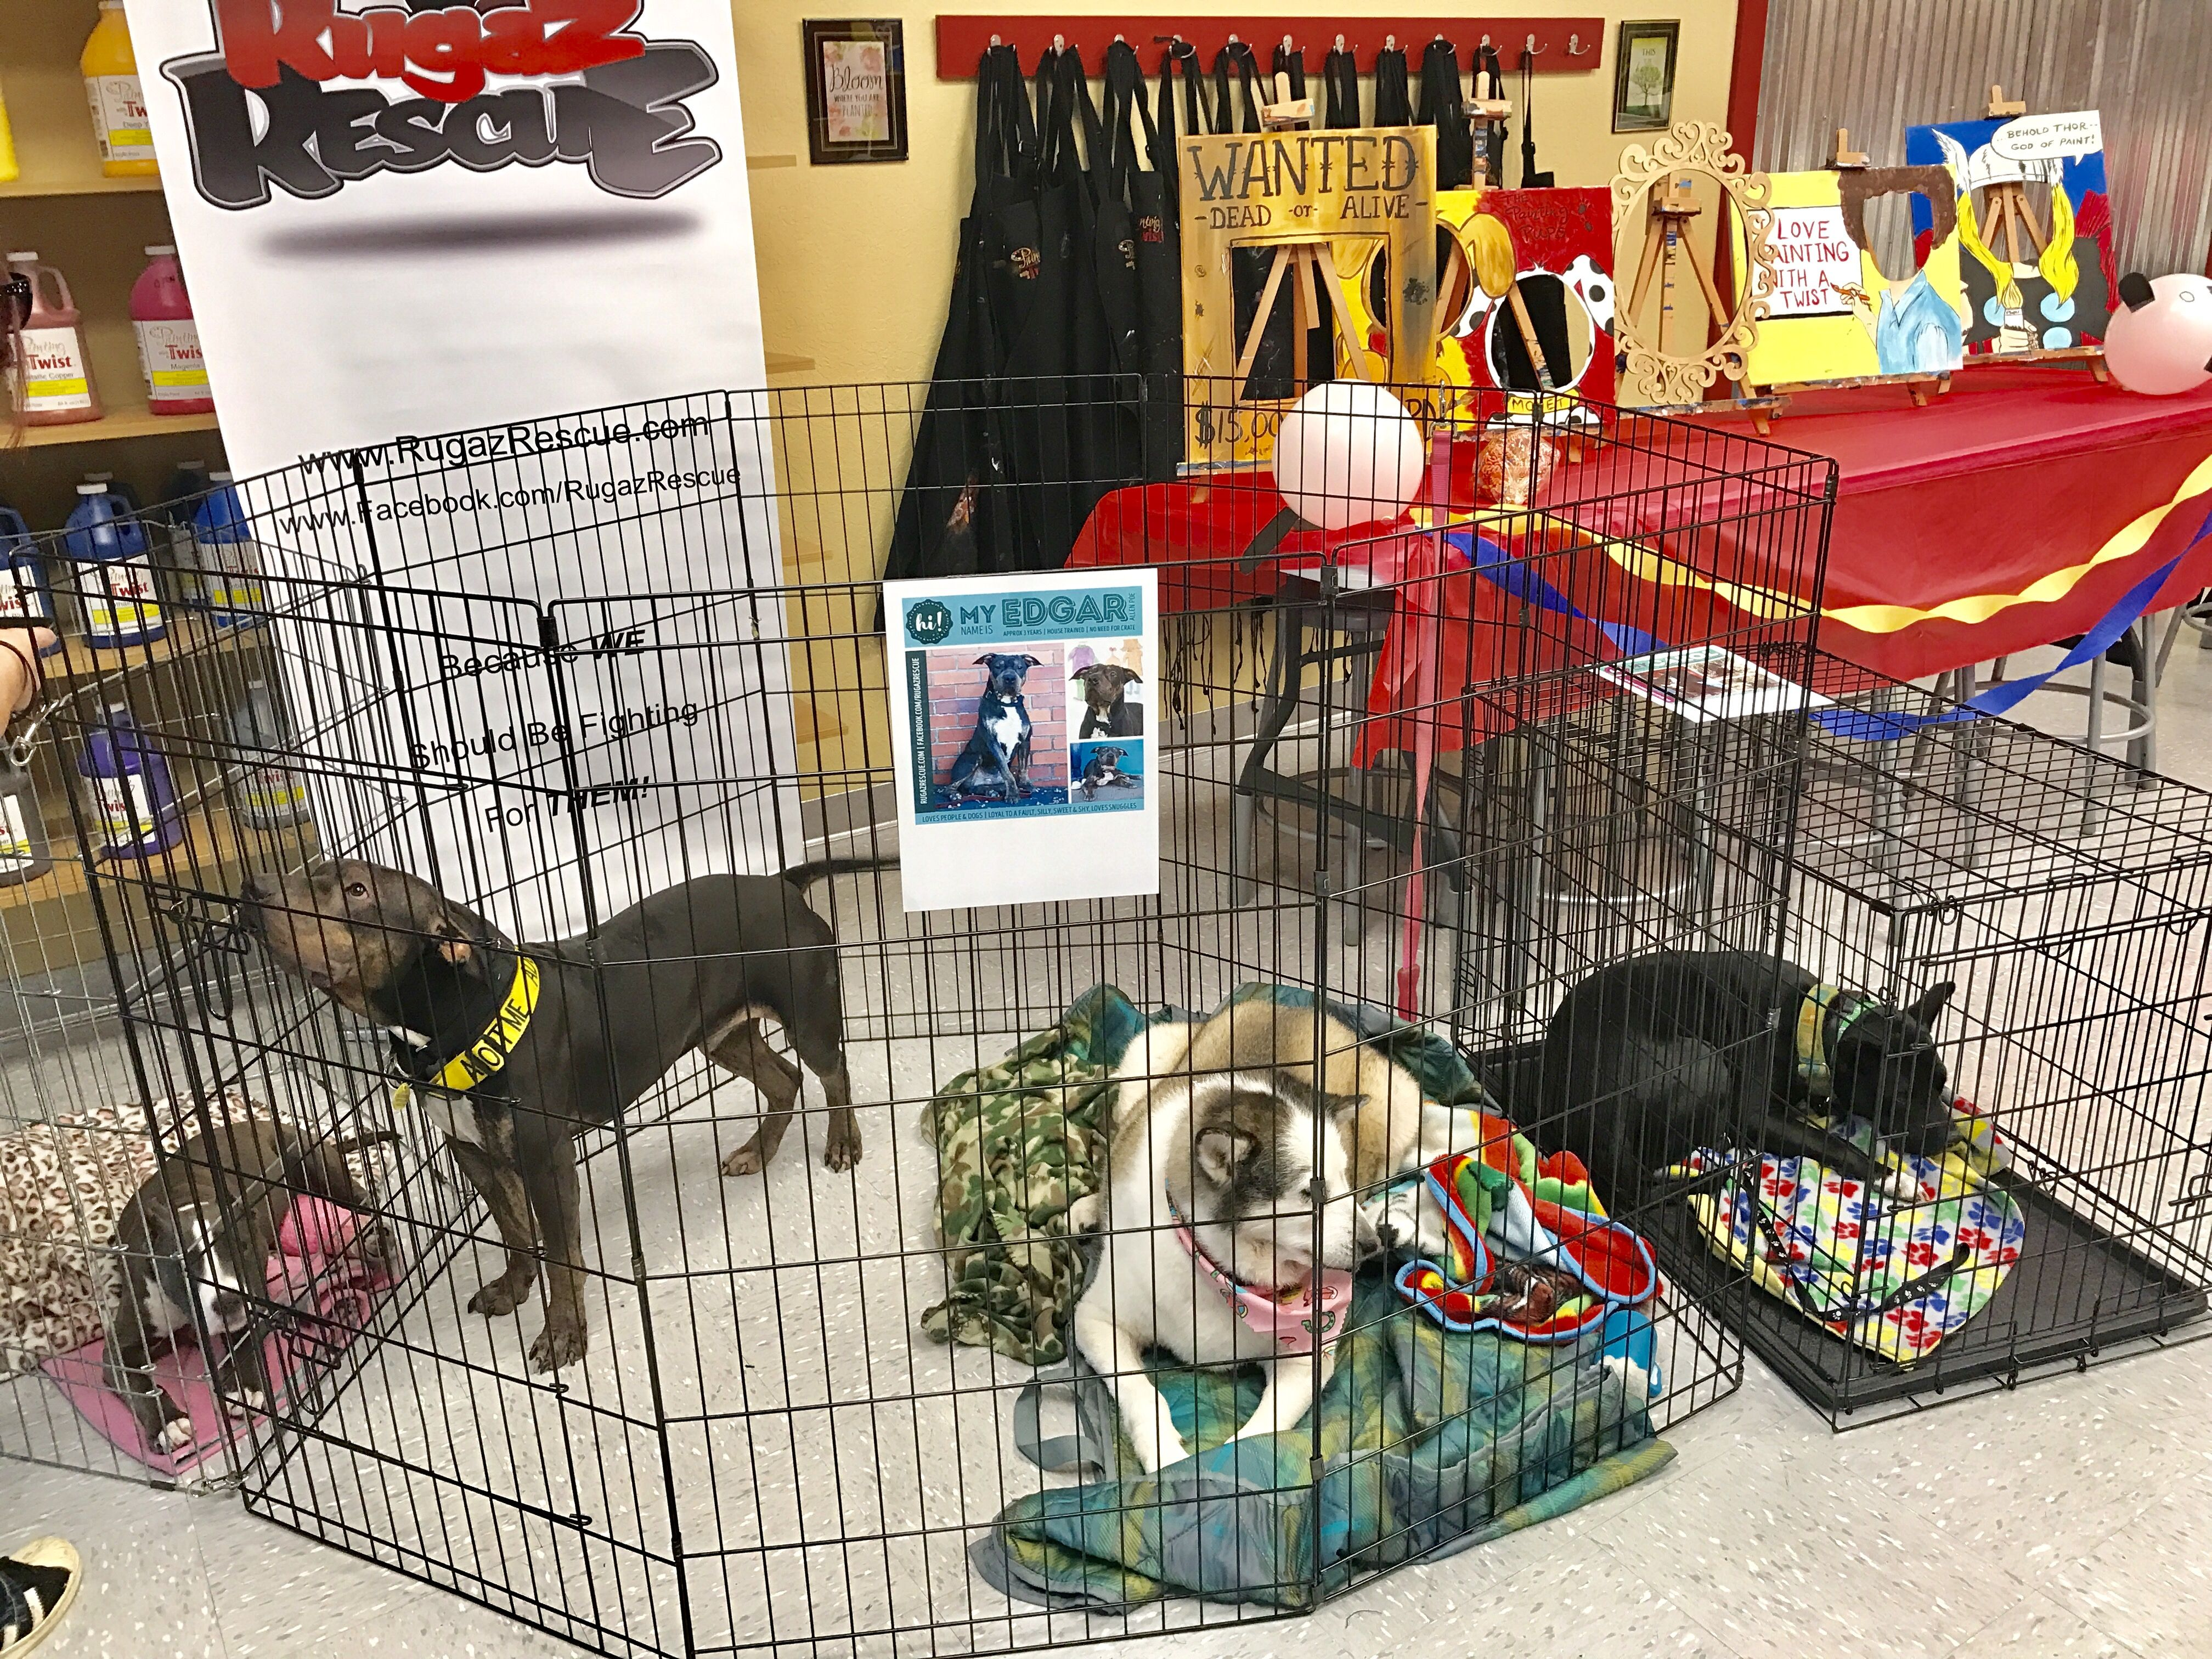 Paint Your Pet Adoption Event In Spring Hill Fl Adopt Rescue Dog Cat Springhill Cute Loveable Animals Ad Paint Your Pet Pet Adoption Event Love Pet